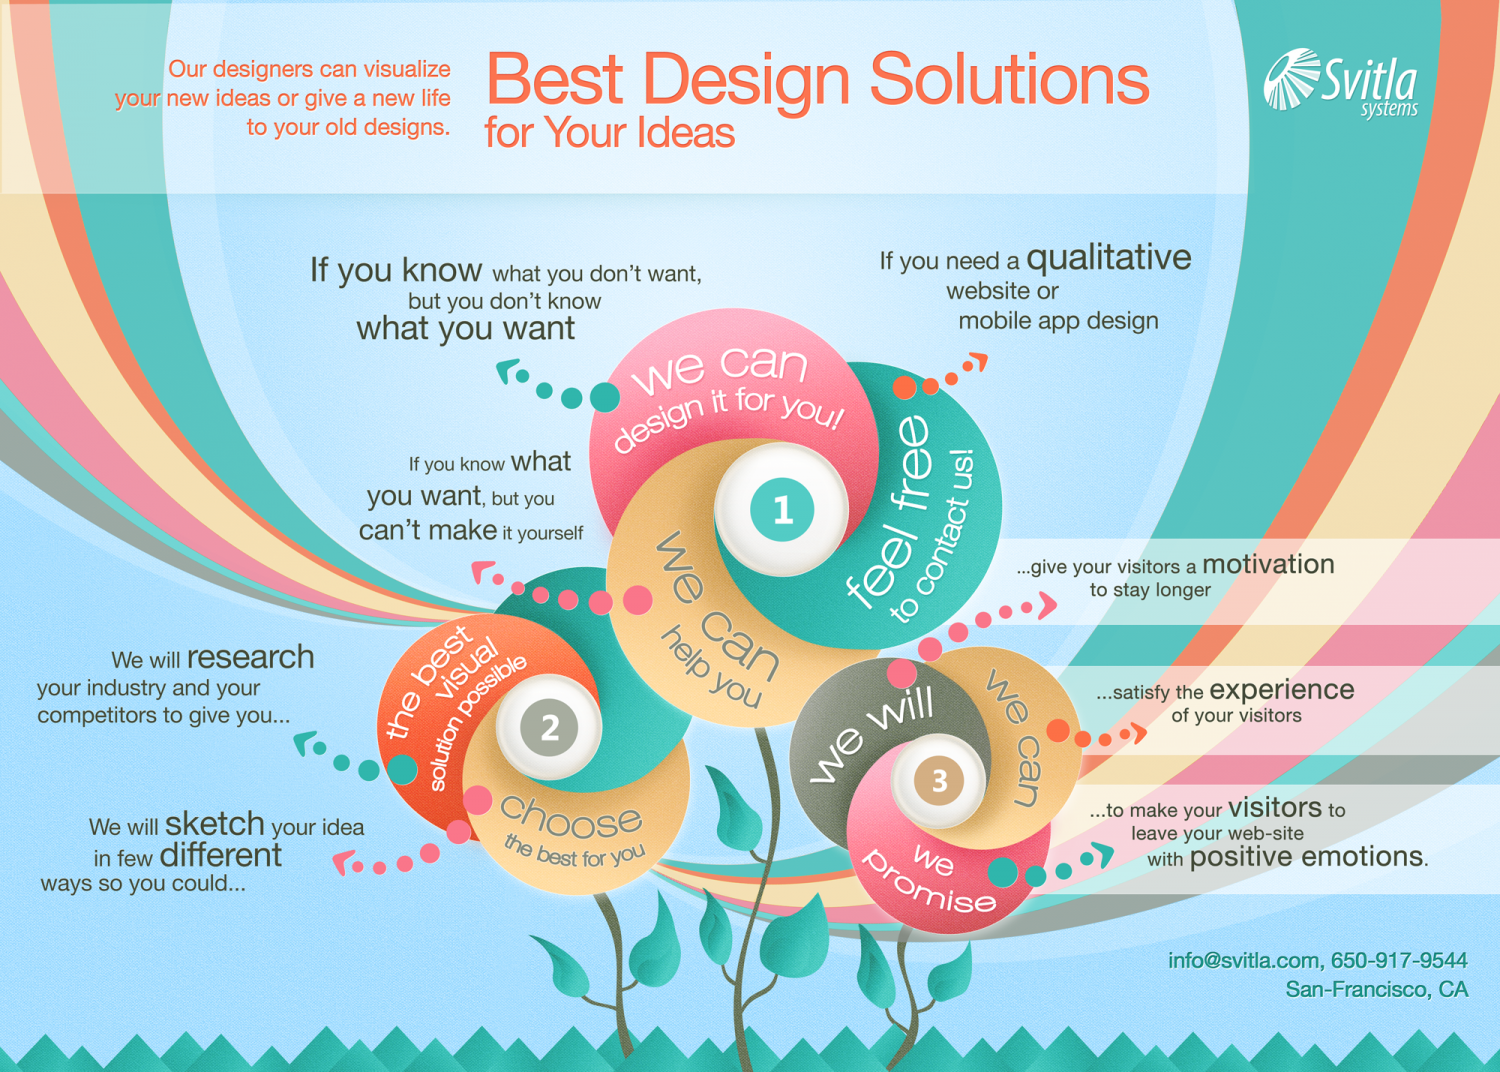 Best Design Solutions Infographic